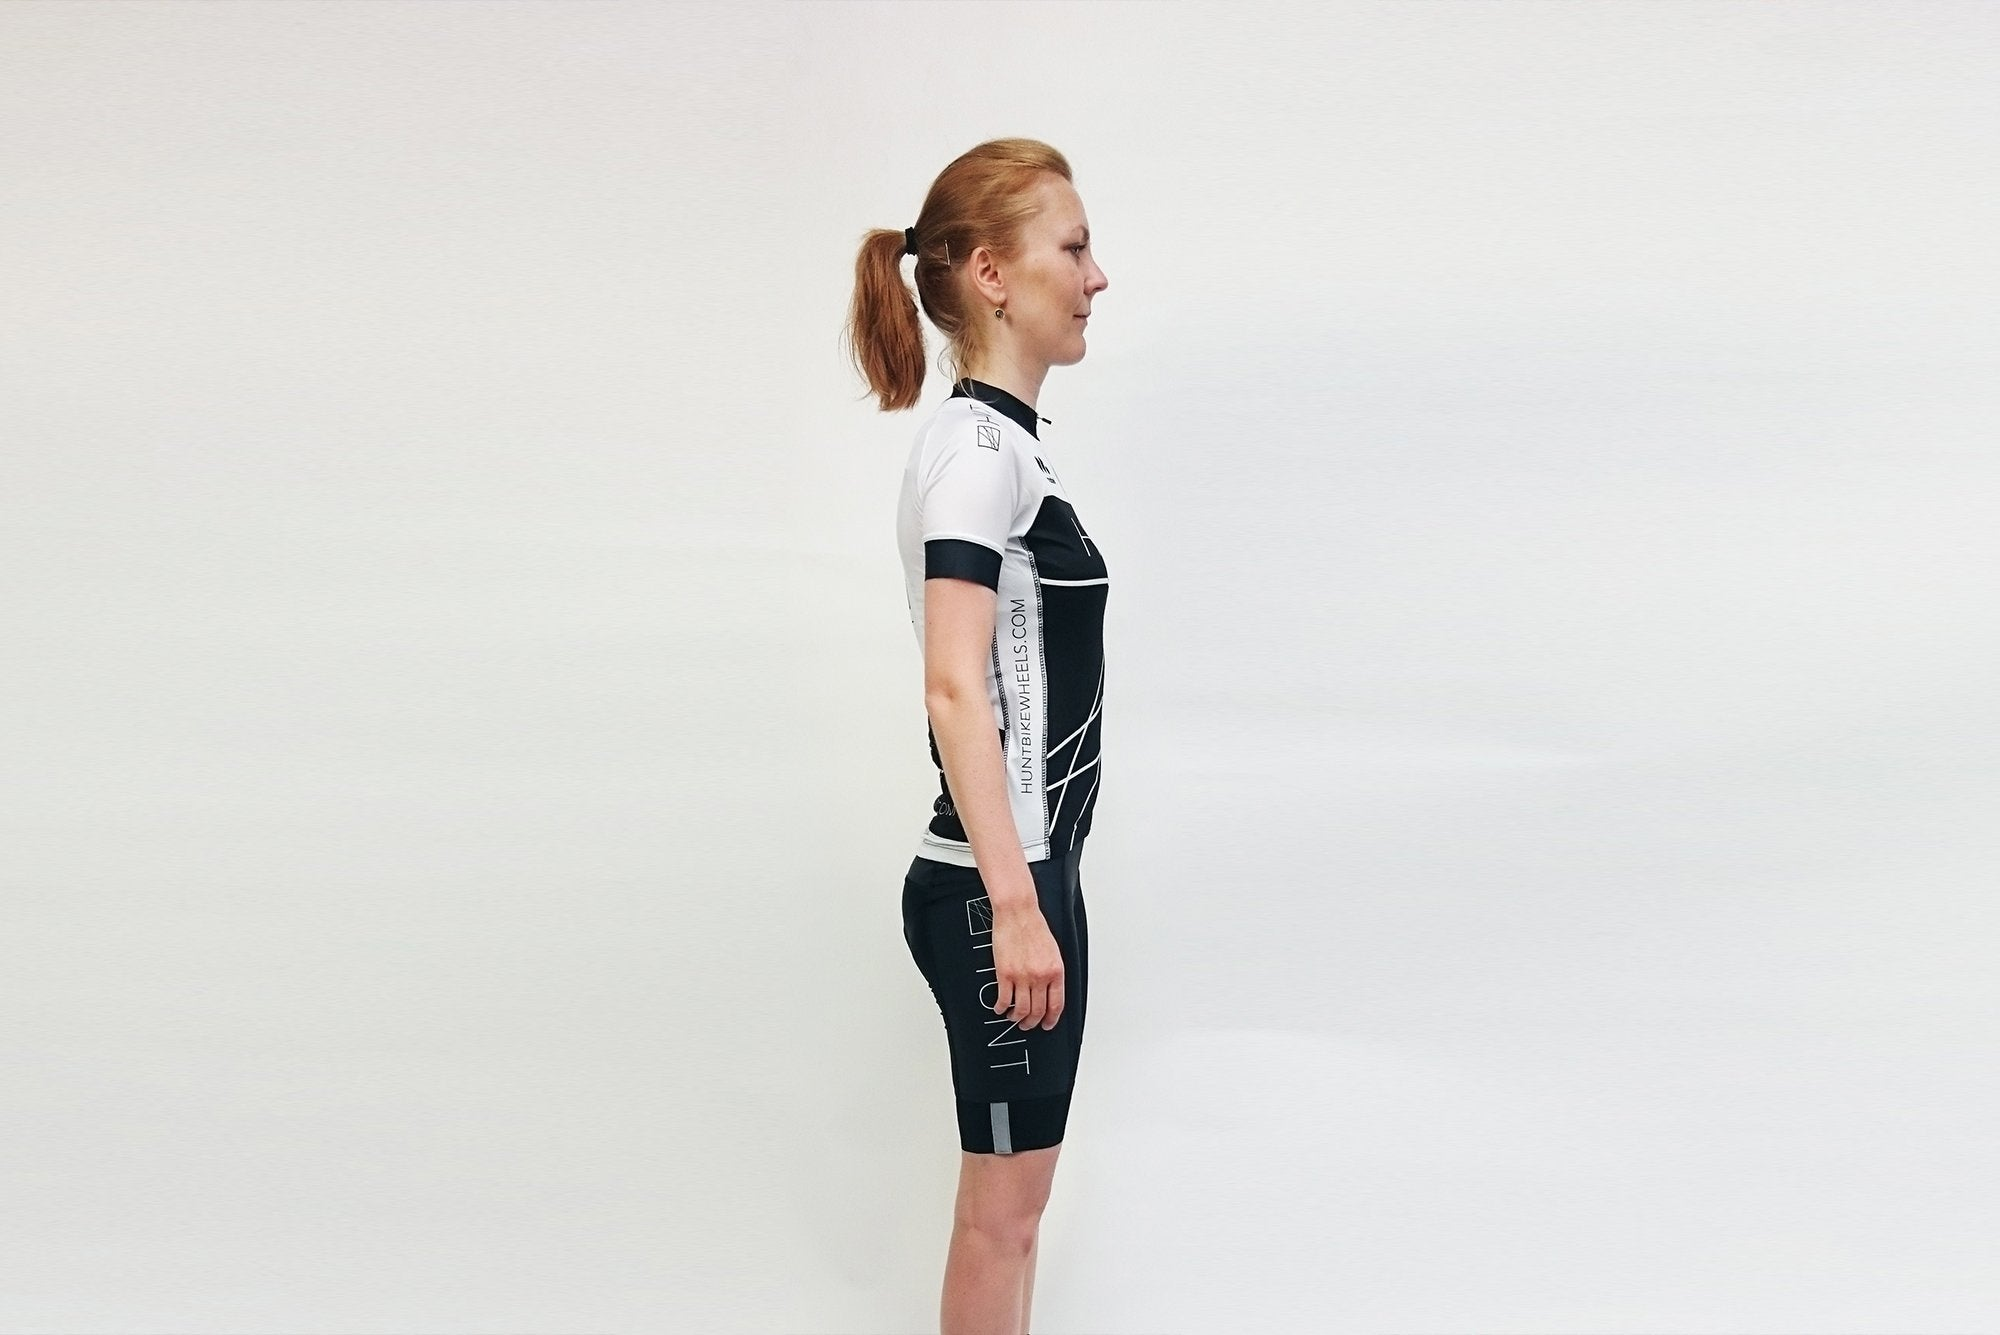 <h1>Hunt Race Season Women Jersey</h1><i>Side Design</i>